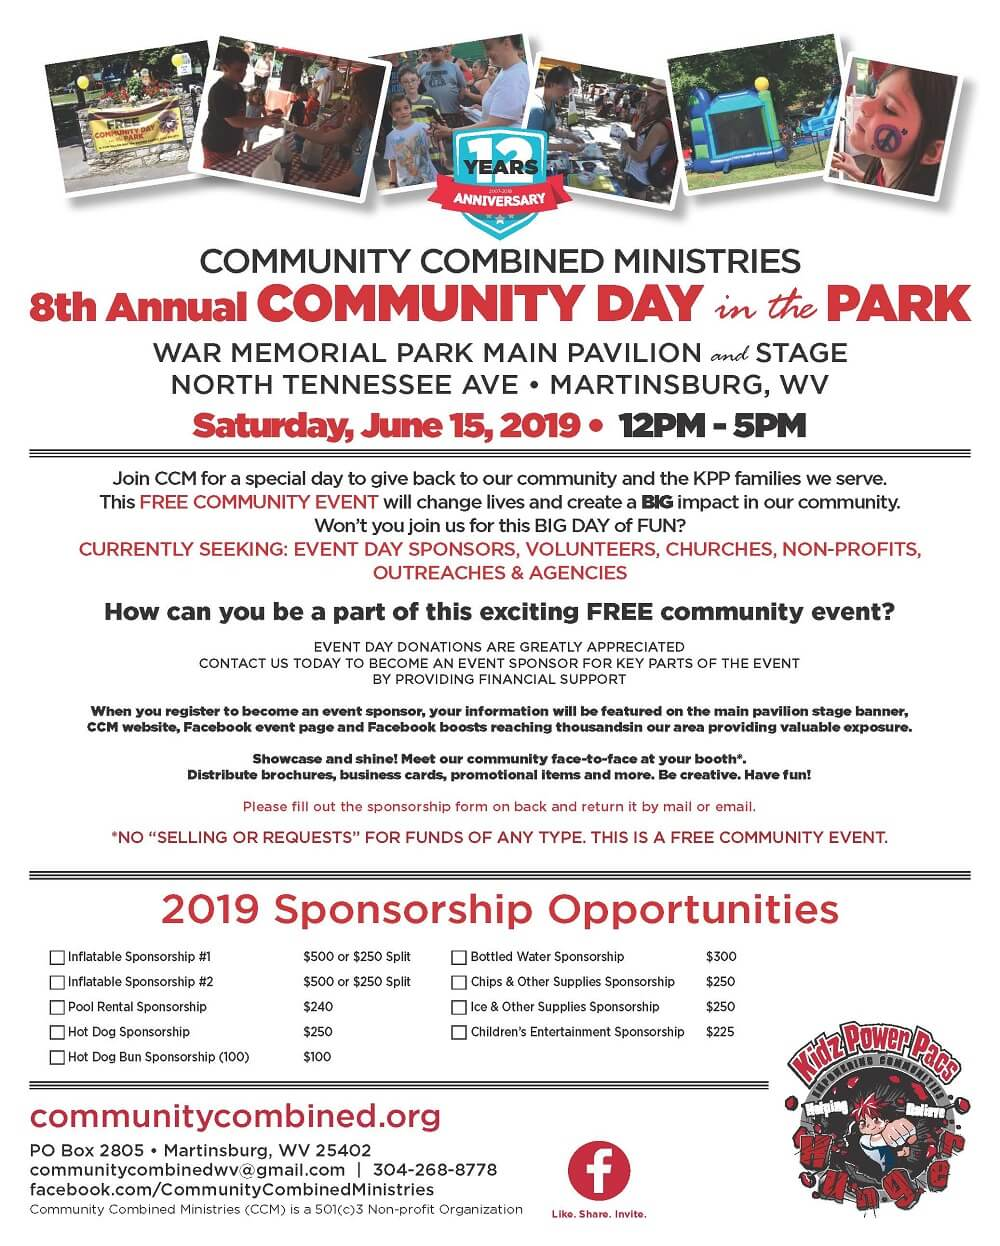 2019 community combined ministries day in the park june 15 2019 download pdf flyer by clicking image caption: opens new tab